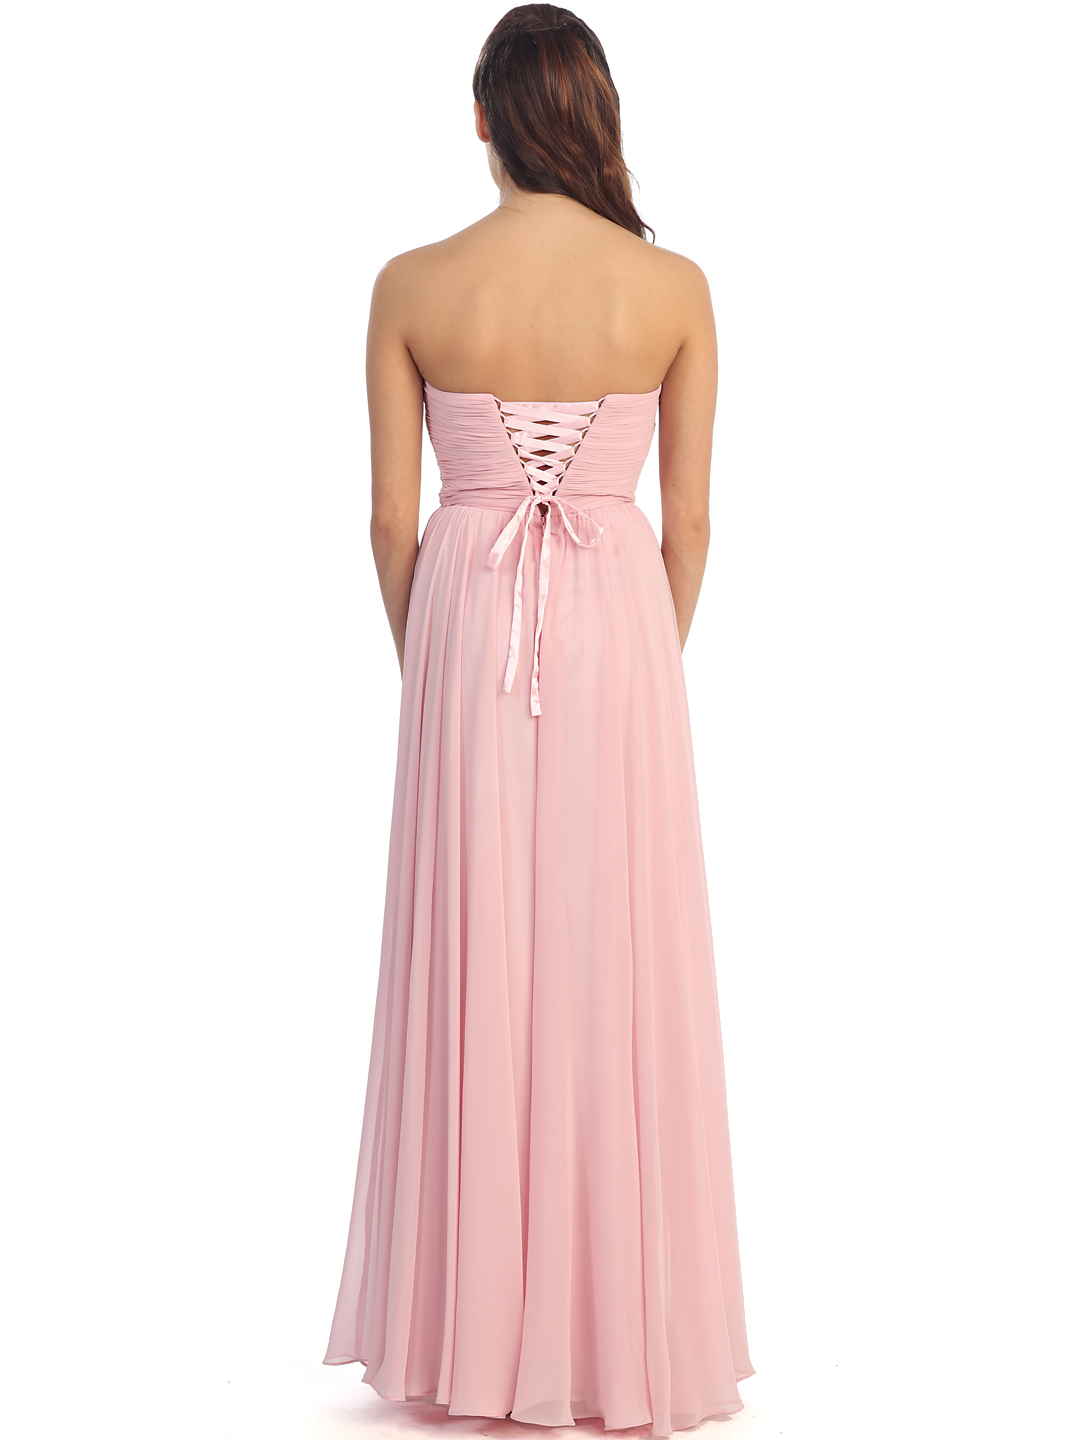 Plunging Strapless Prom Dress Sung Boutique L A